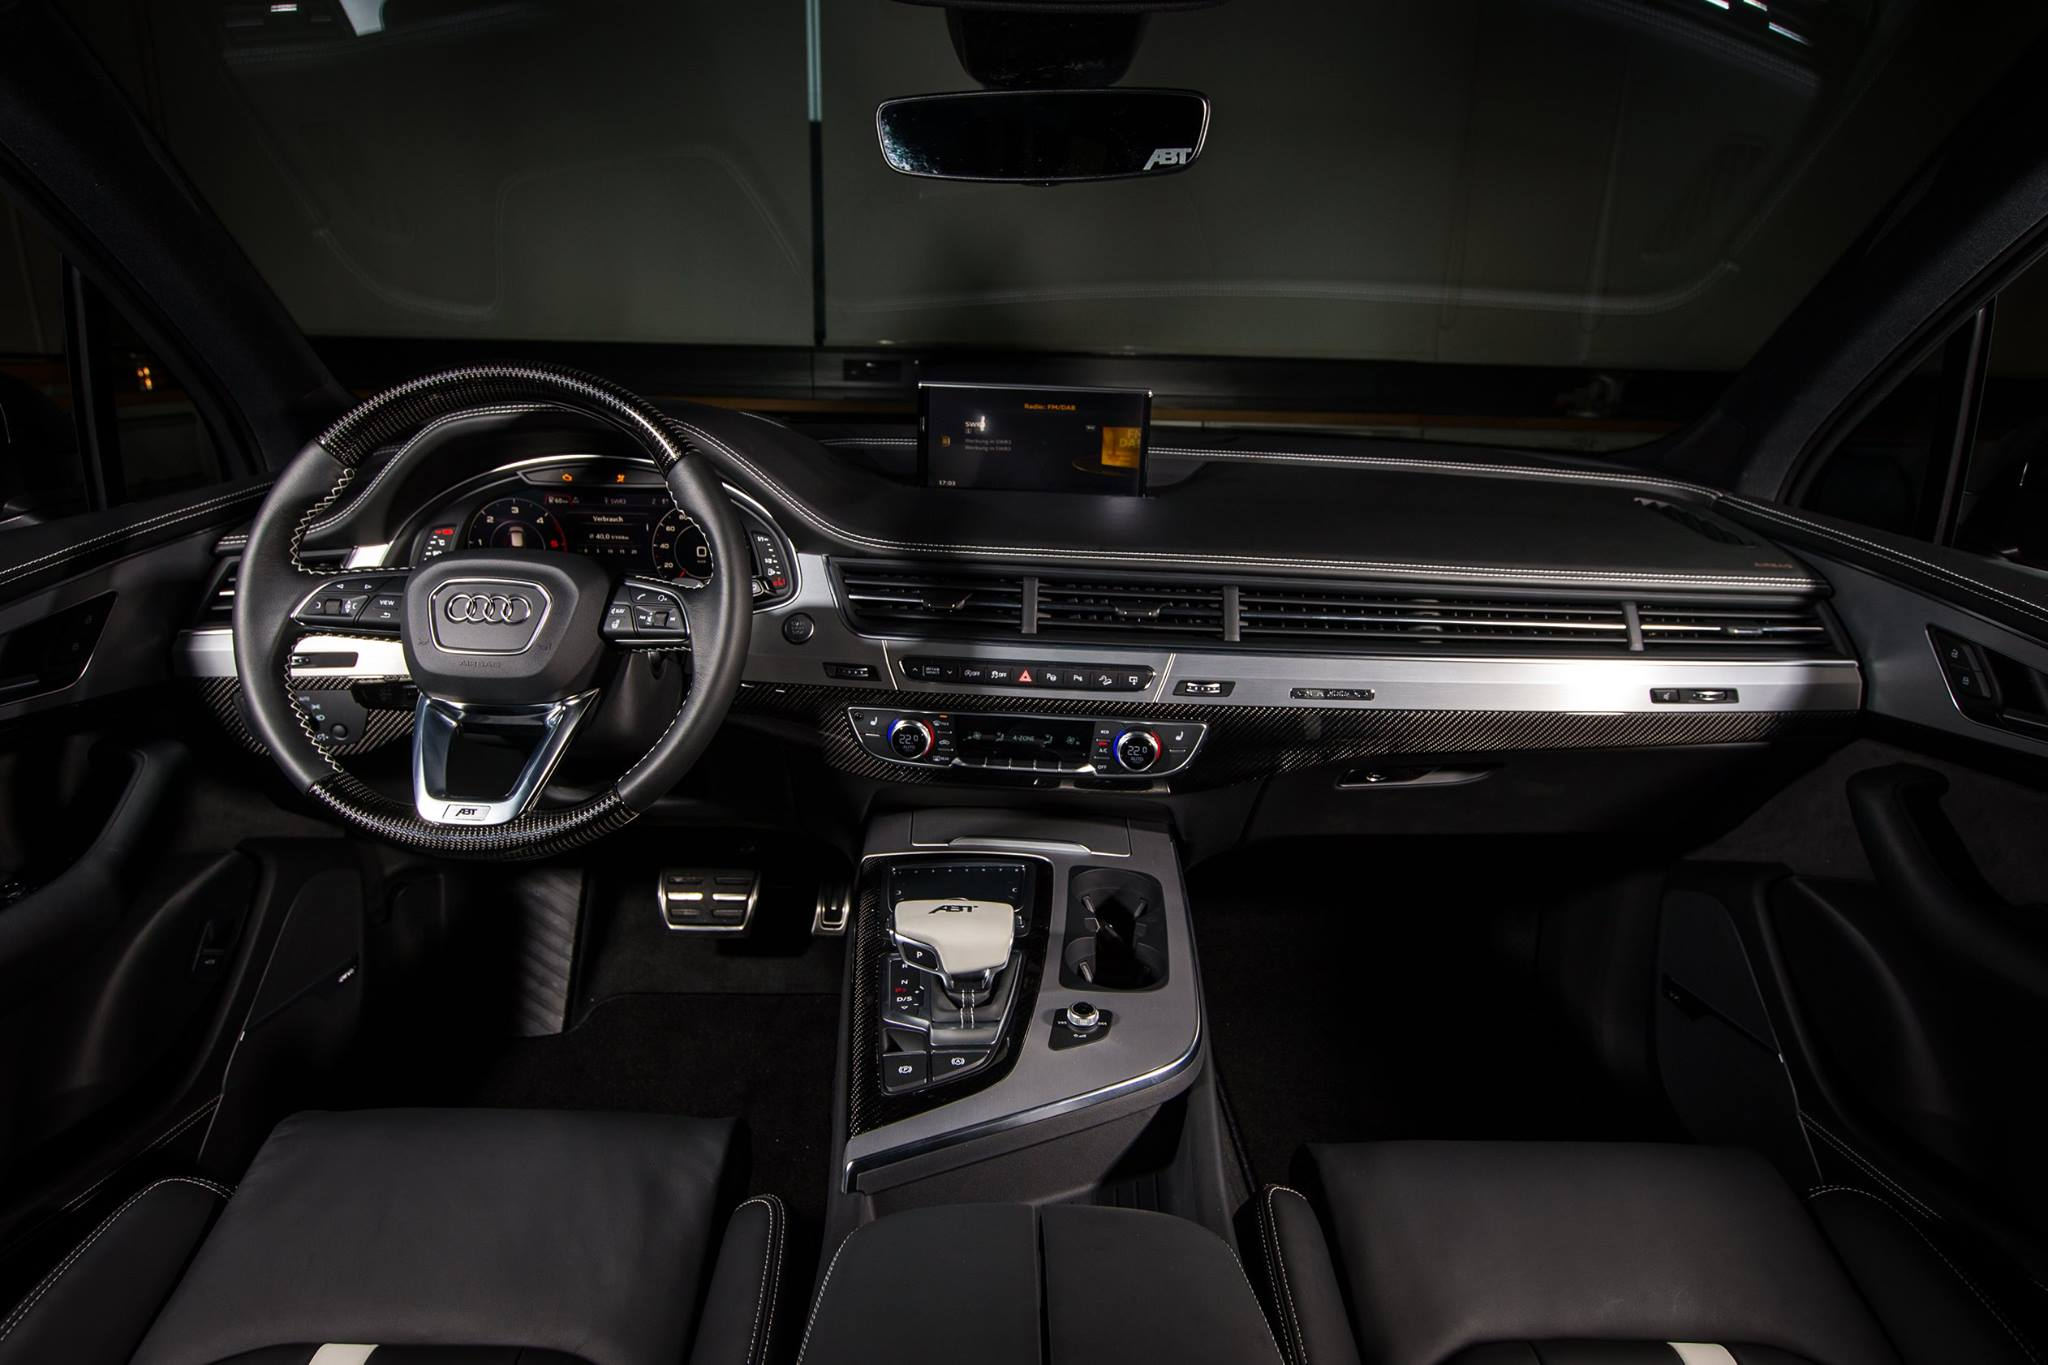 Audi Q7 Tuned By Abt Has Carbon Fiber Seats And Wider Body Autoevolution